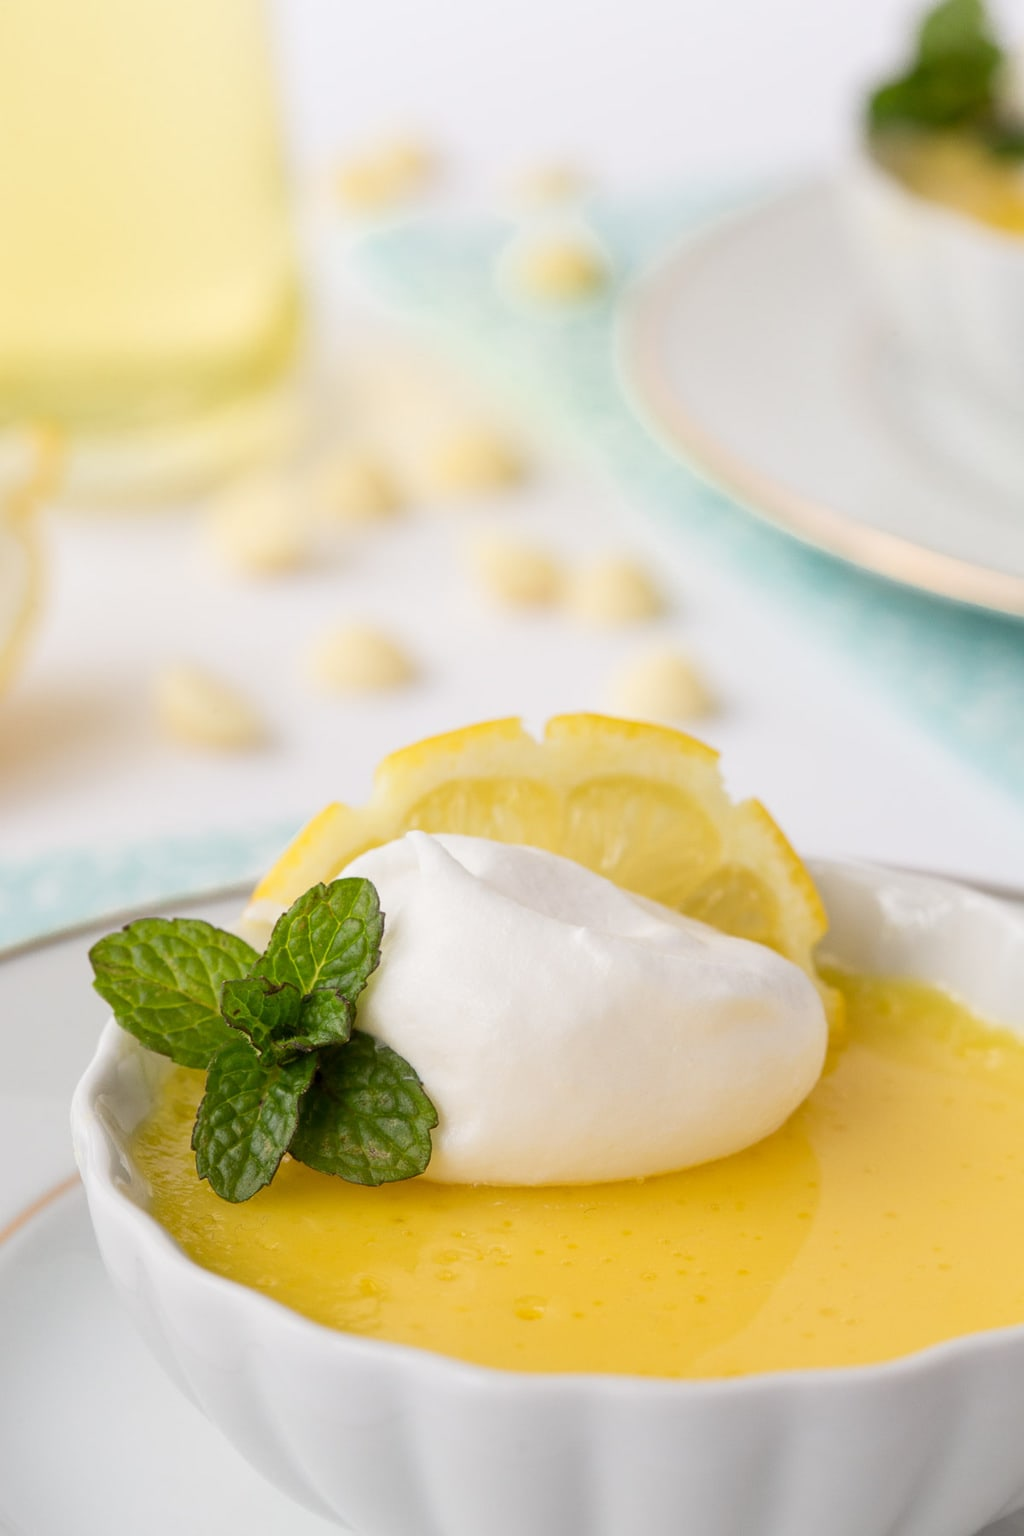 Closeup photo of a fluted white bowl of Lemon and White Chocolate Pots de Crème garnished with a lemon, mint and whipped cream with a small pitcher of Limoncello Syrup and white chocolate chips in the background.